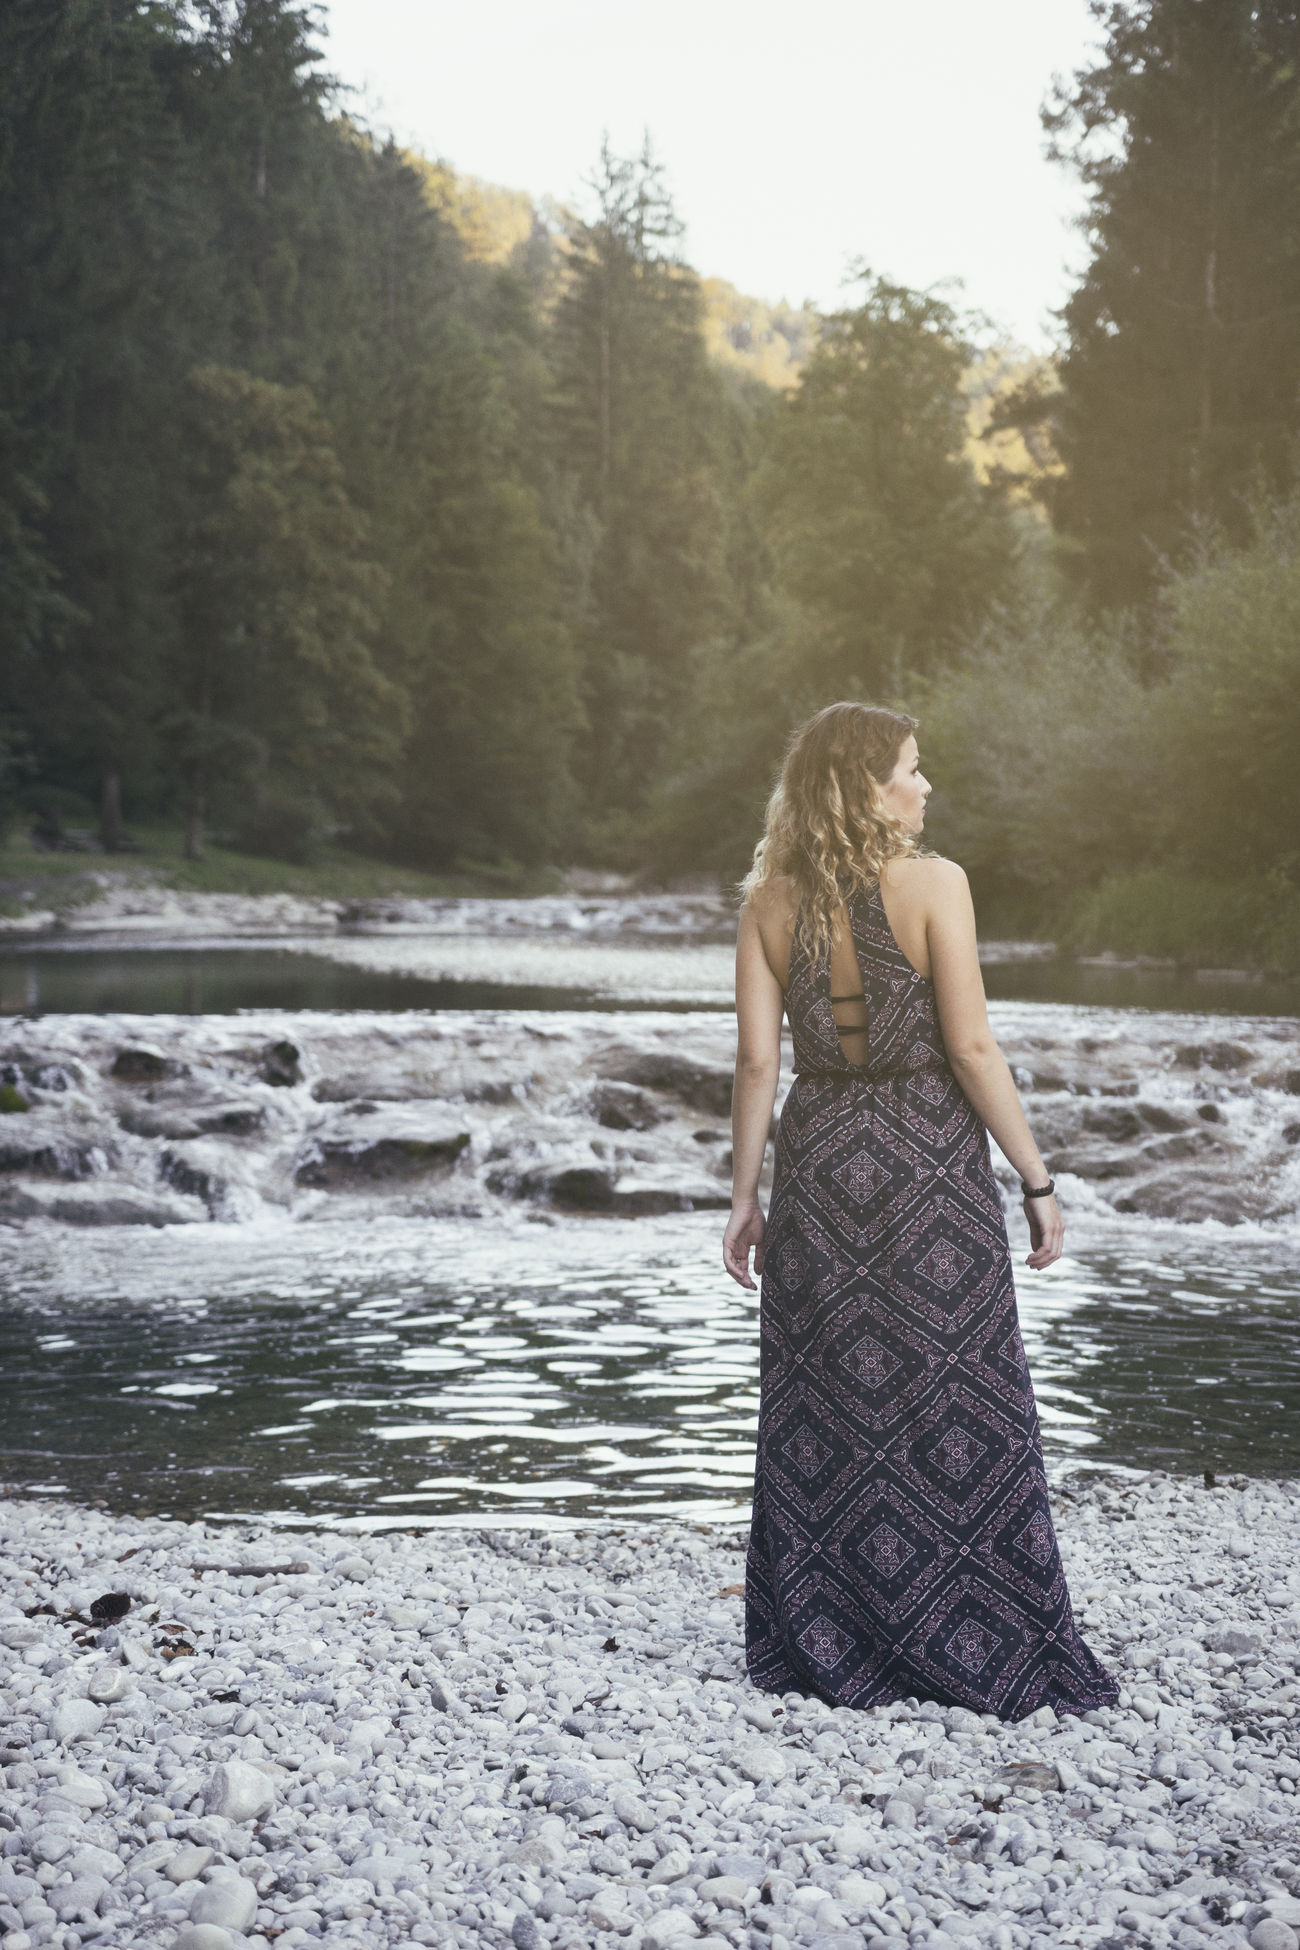 Forest Hippie Maeva Nature One Person One Woman Only One Young Woman Only Outdoor Outdoor Photography Outdoors River Sony Sonyalpha7ii Stones Summer Switzerland Tree Water Women Young Adult Young Women